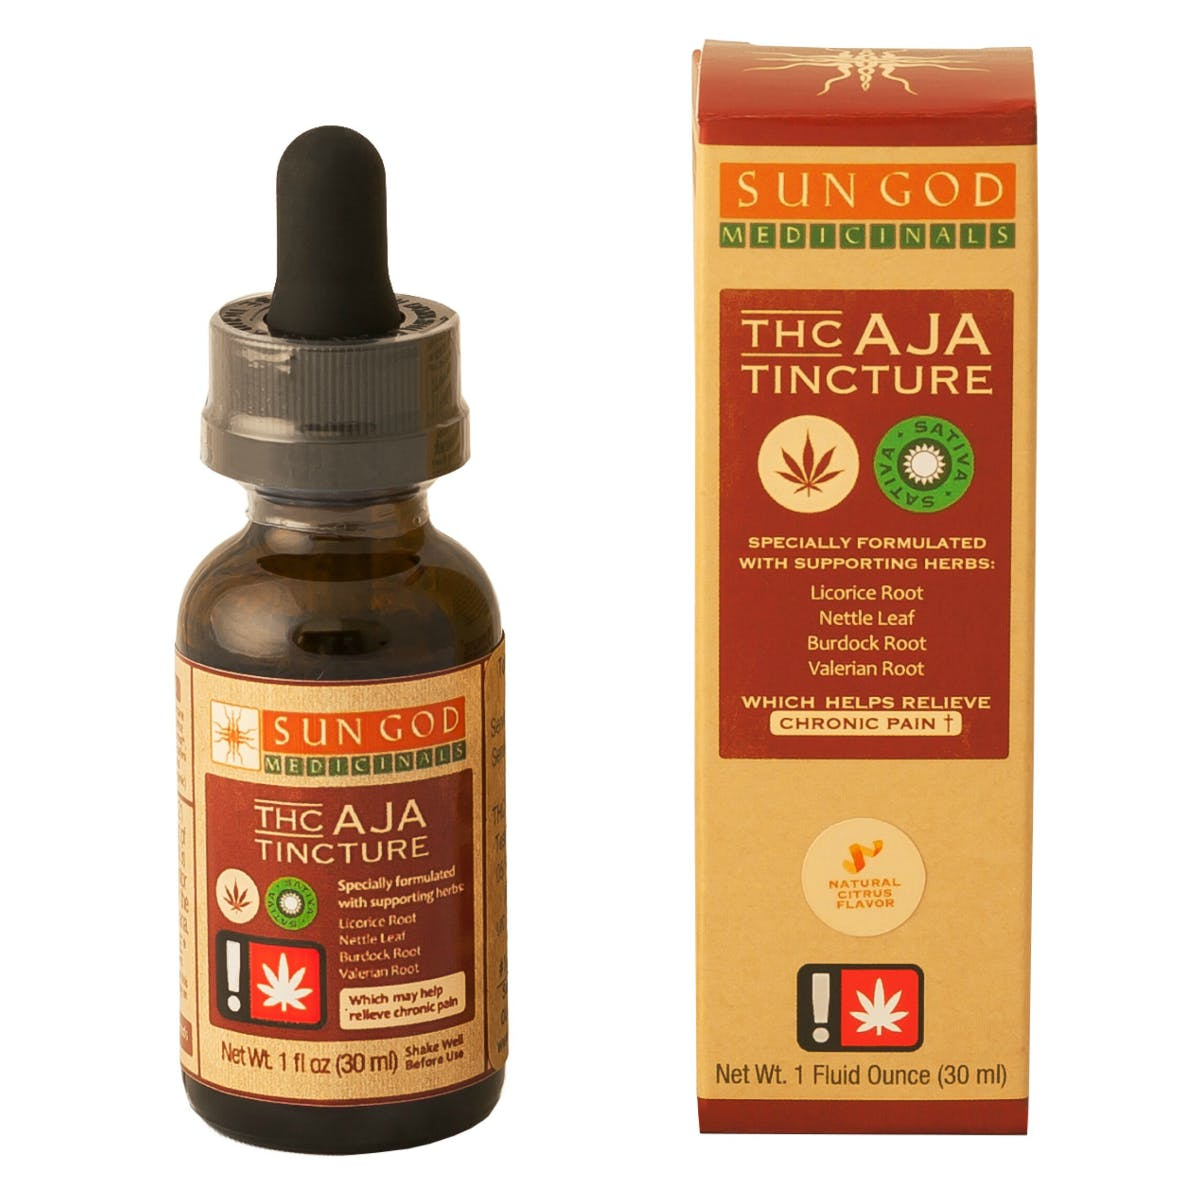 marijuana-dispensaries-breeze-botanicals-ashland-in-ashland-aja-herbal-infused-thc-tincture